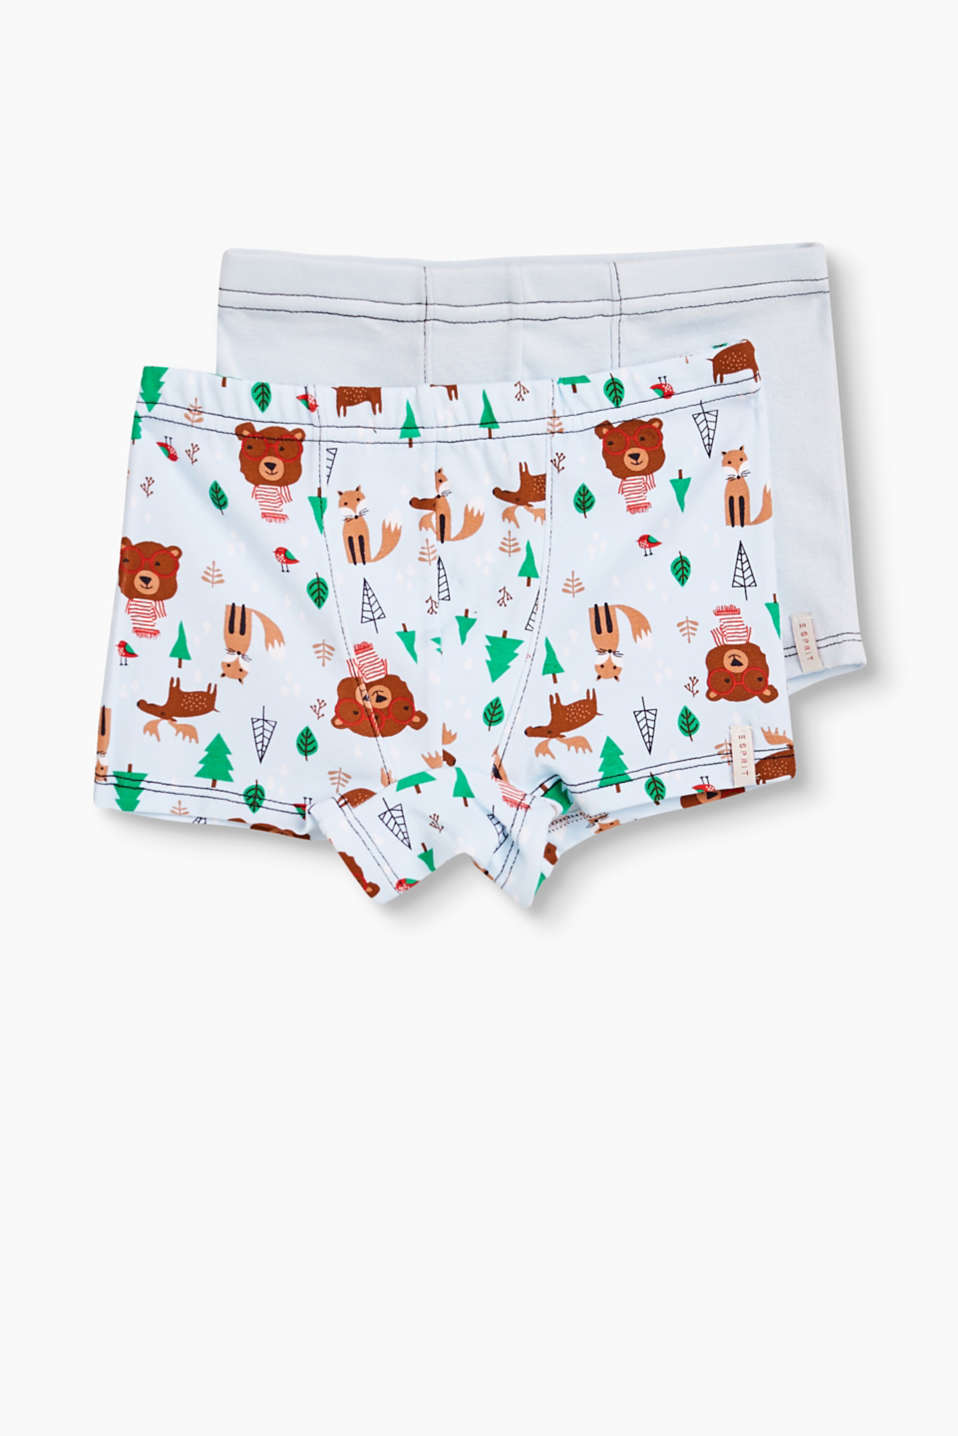 Cotton/stretch cotton boxer shorts in plain or with a little bear print